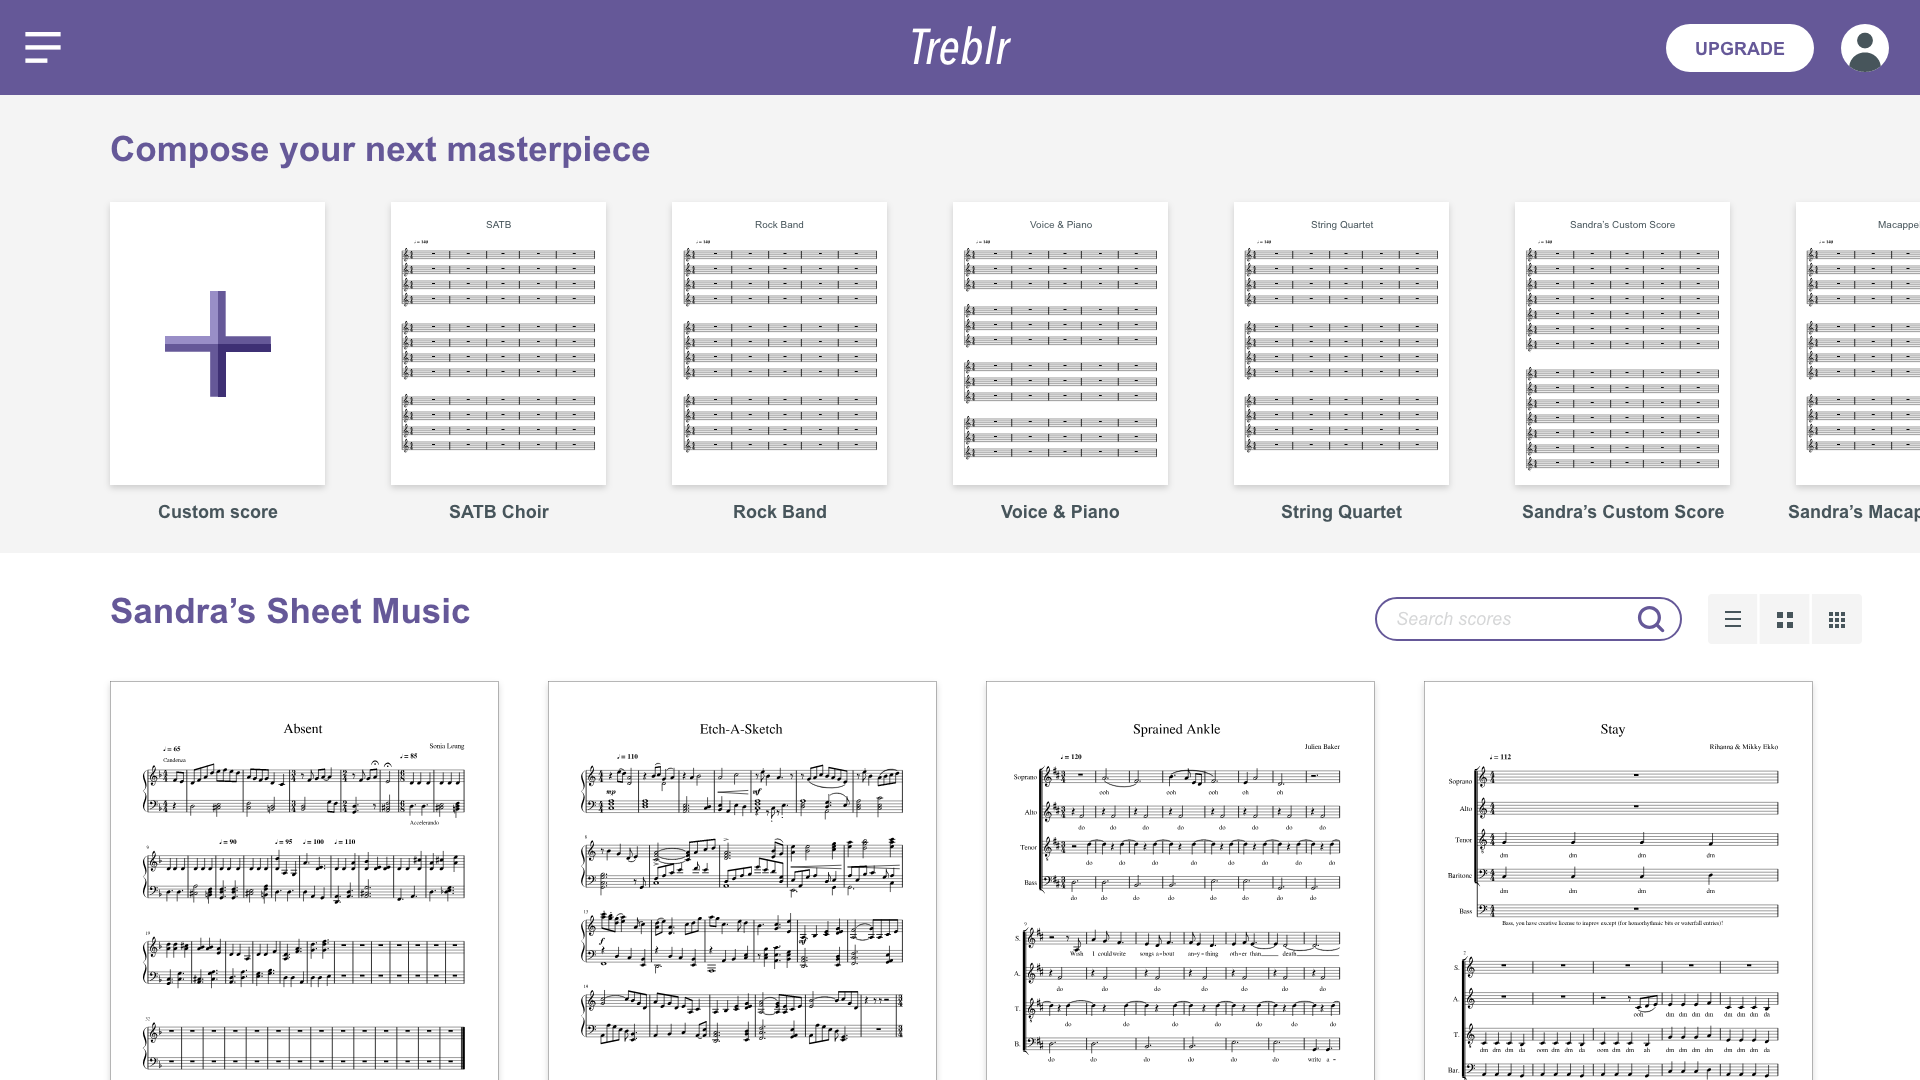 Treblr's dashboard screen.